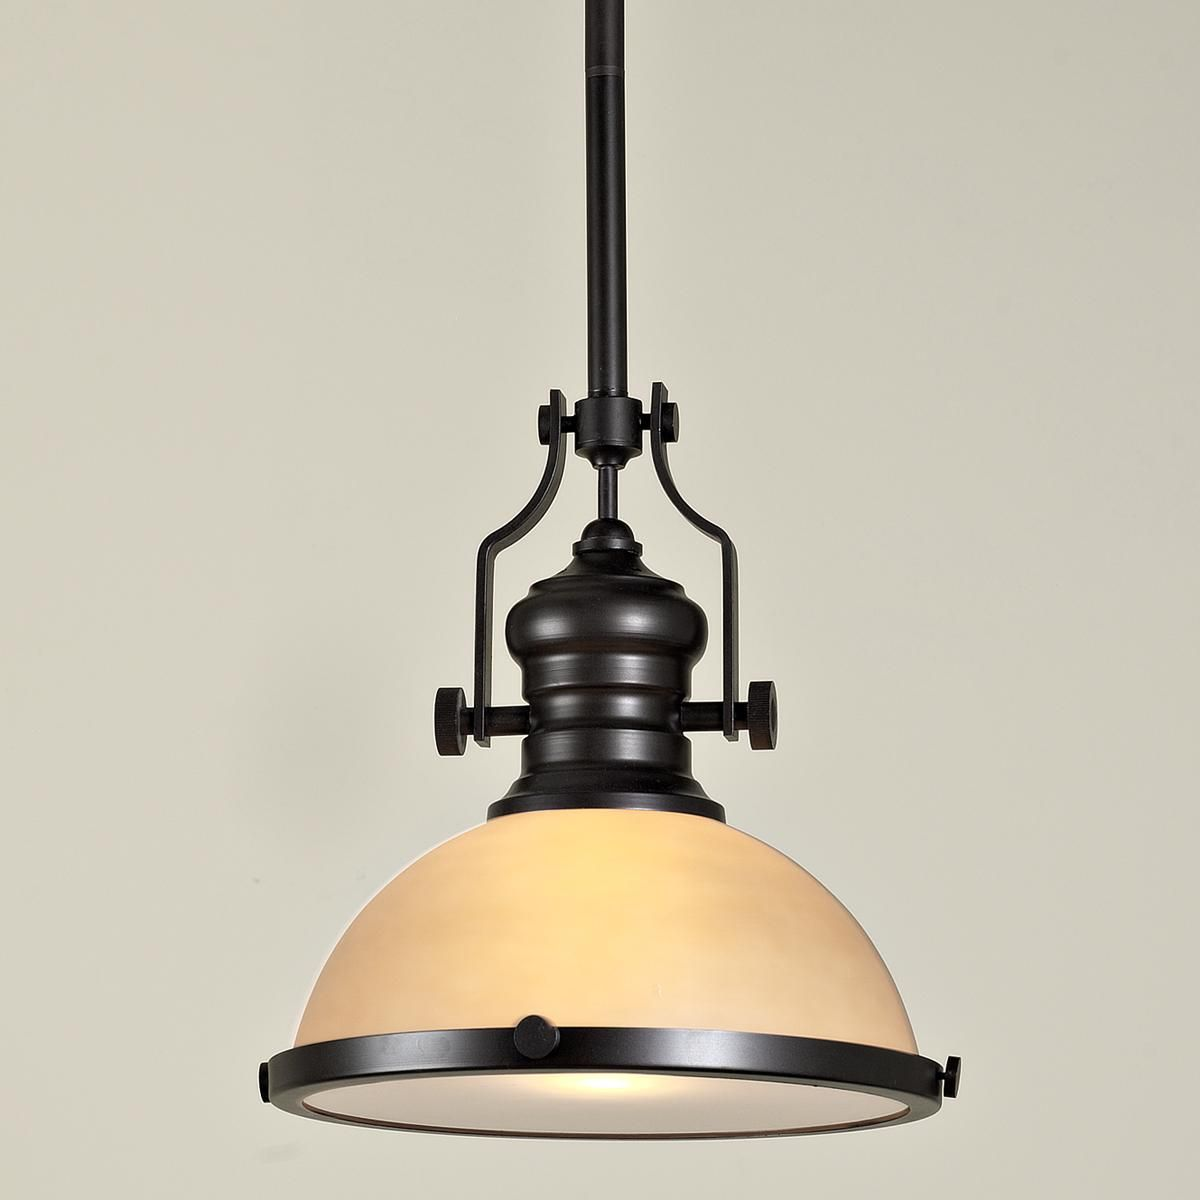 Craftsman period pendant 4 finishes shades of light